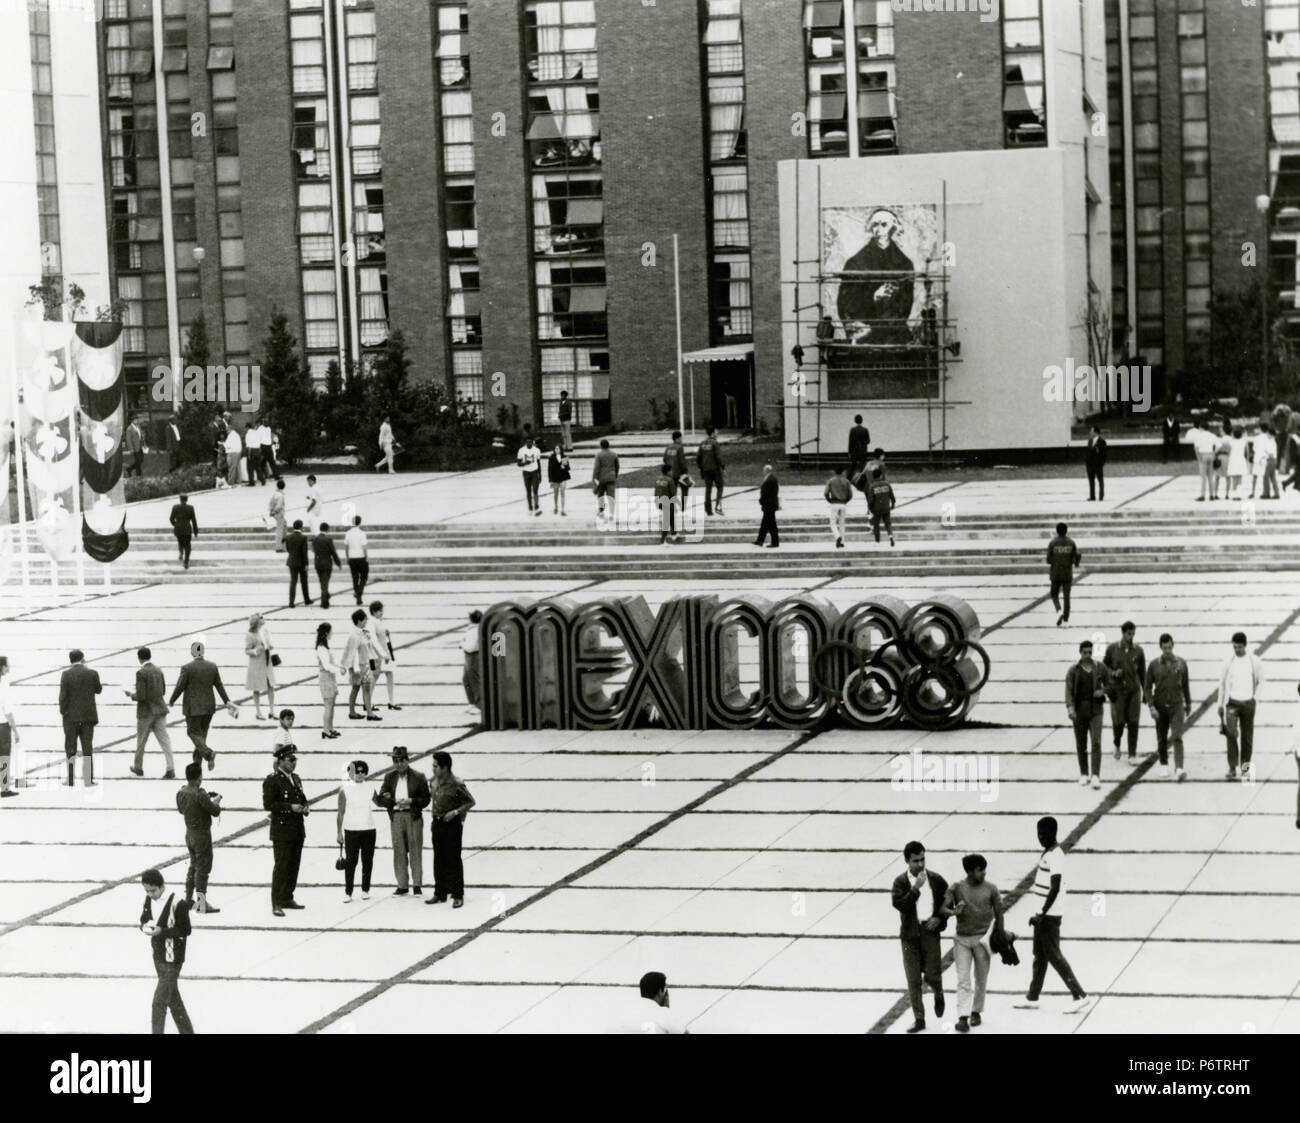 Mexico 68 Olympics Square, 1968 - Stock Image